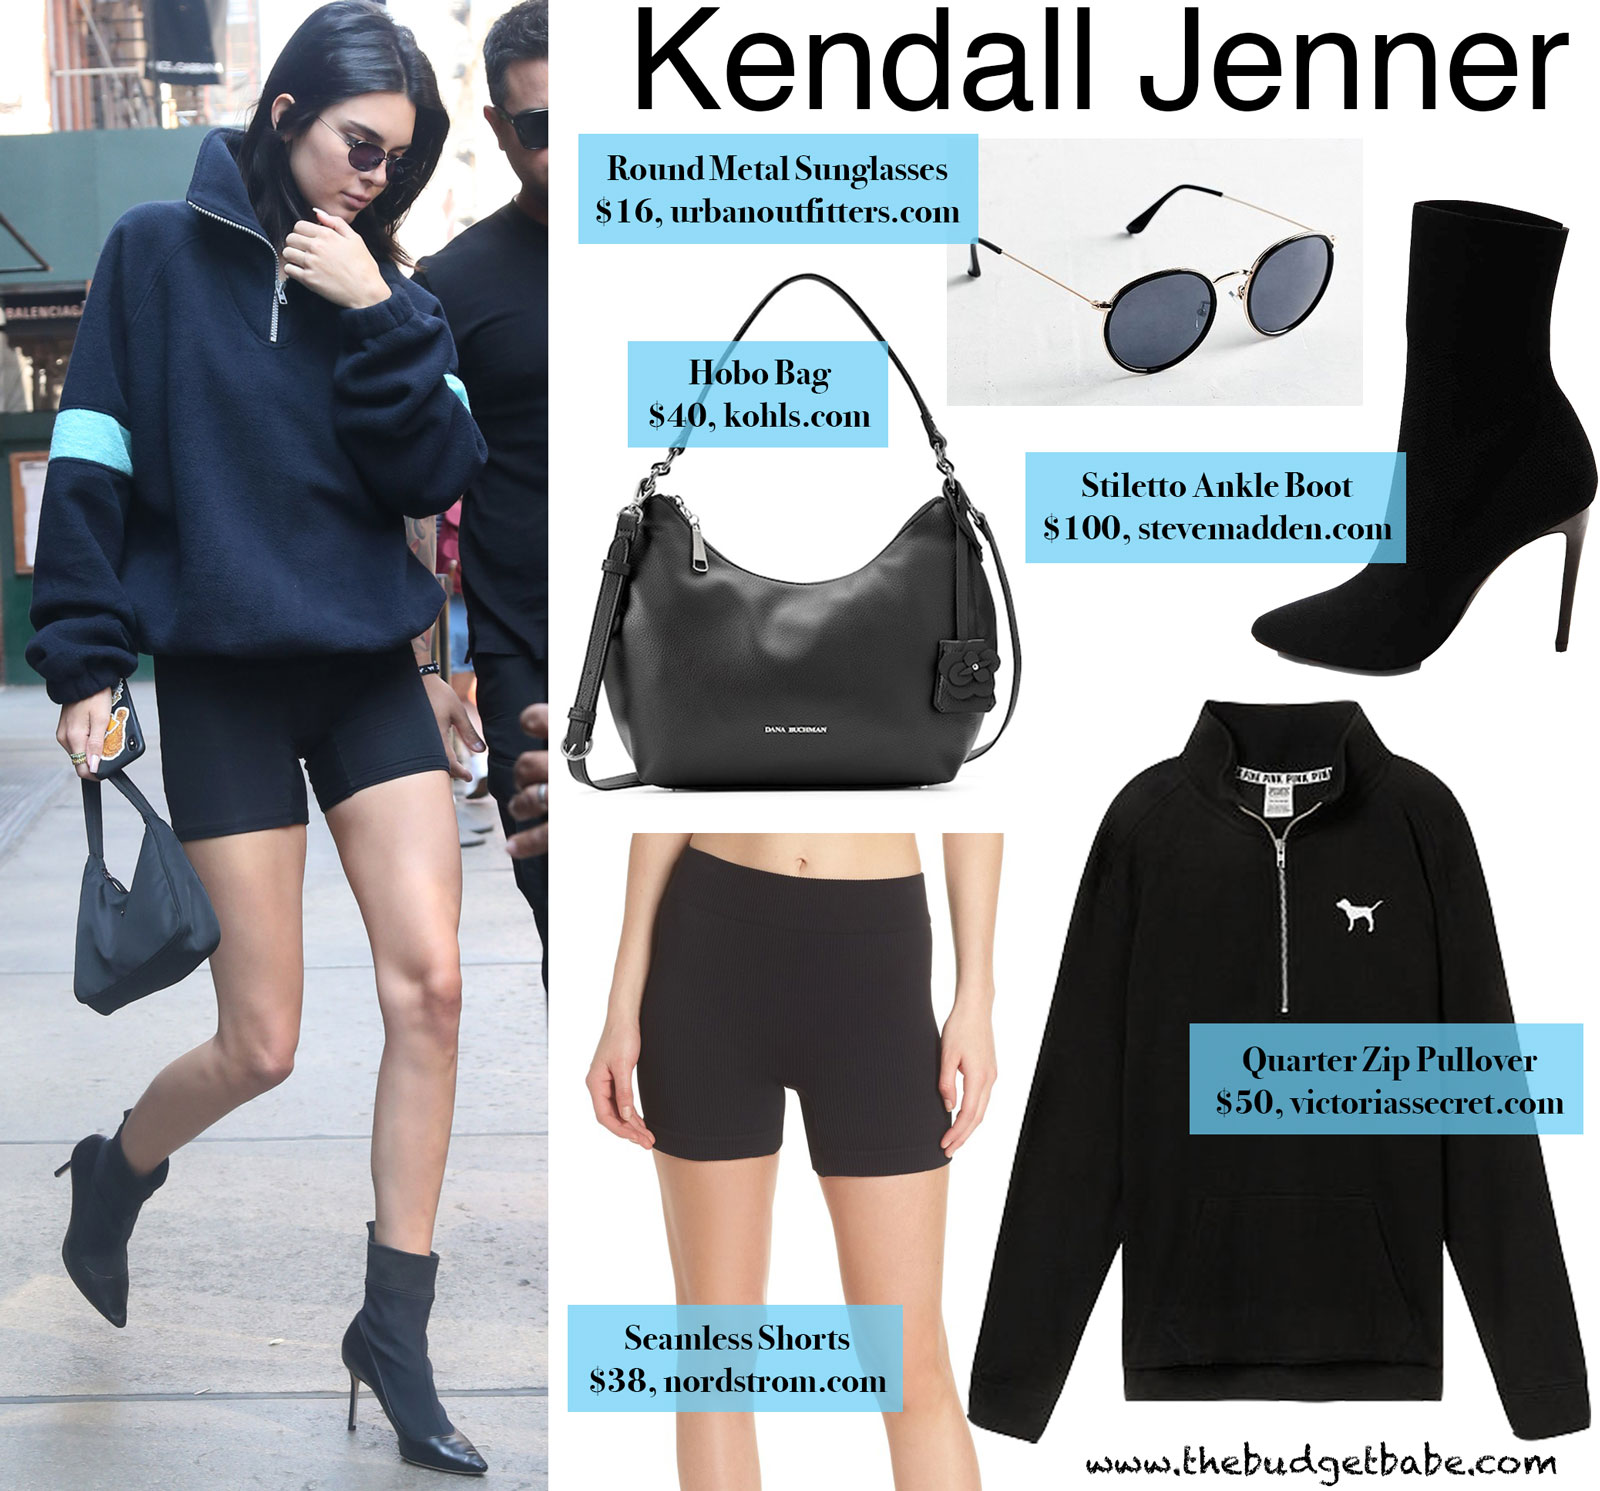 Kendall Jenner Ankle Boots and Quarter Zip Pullover Look for Less